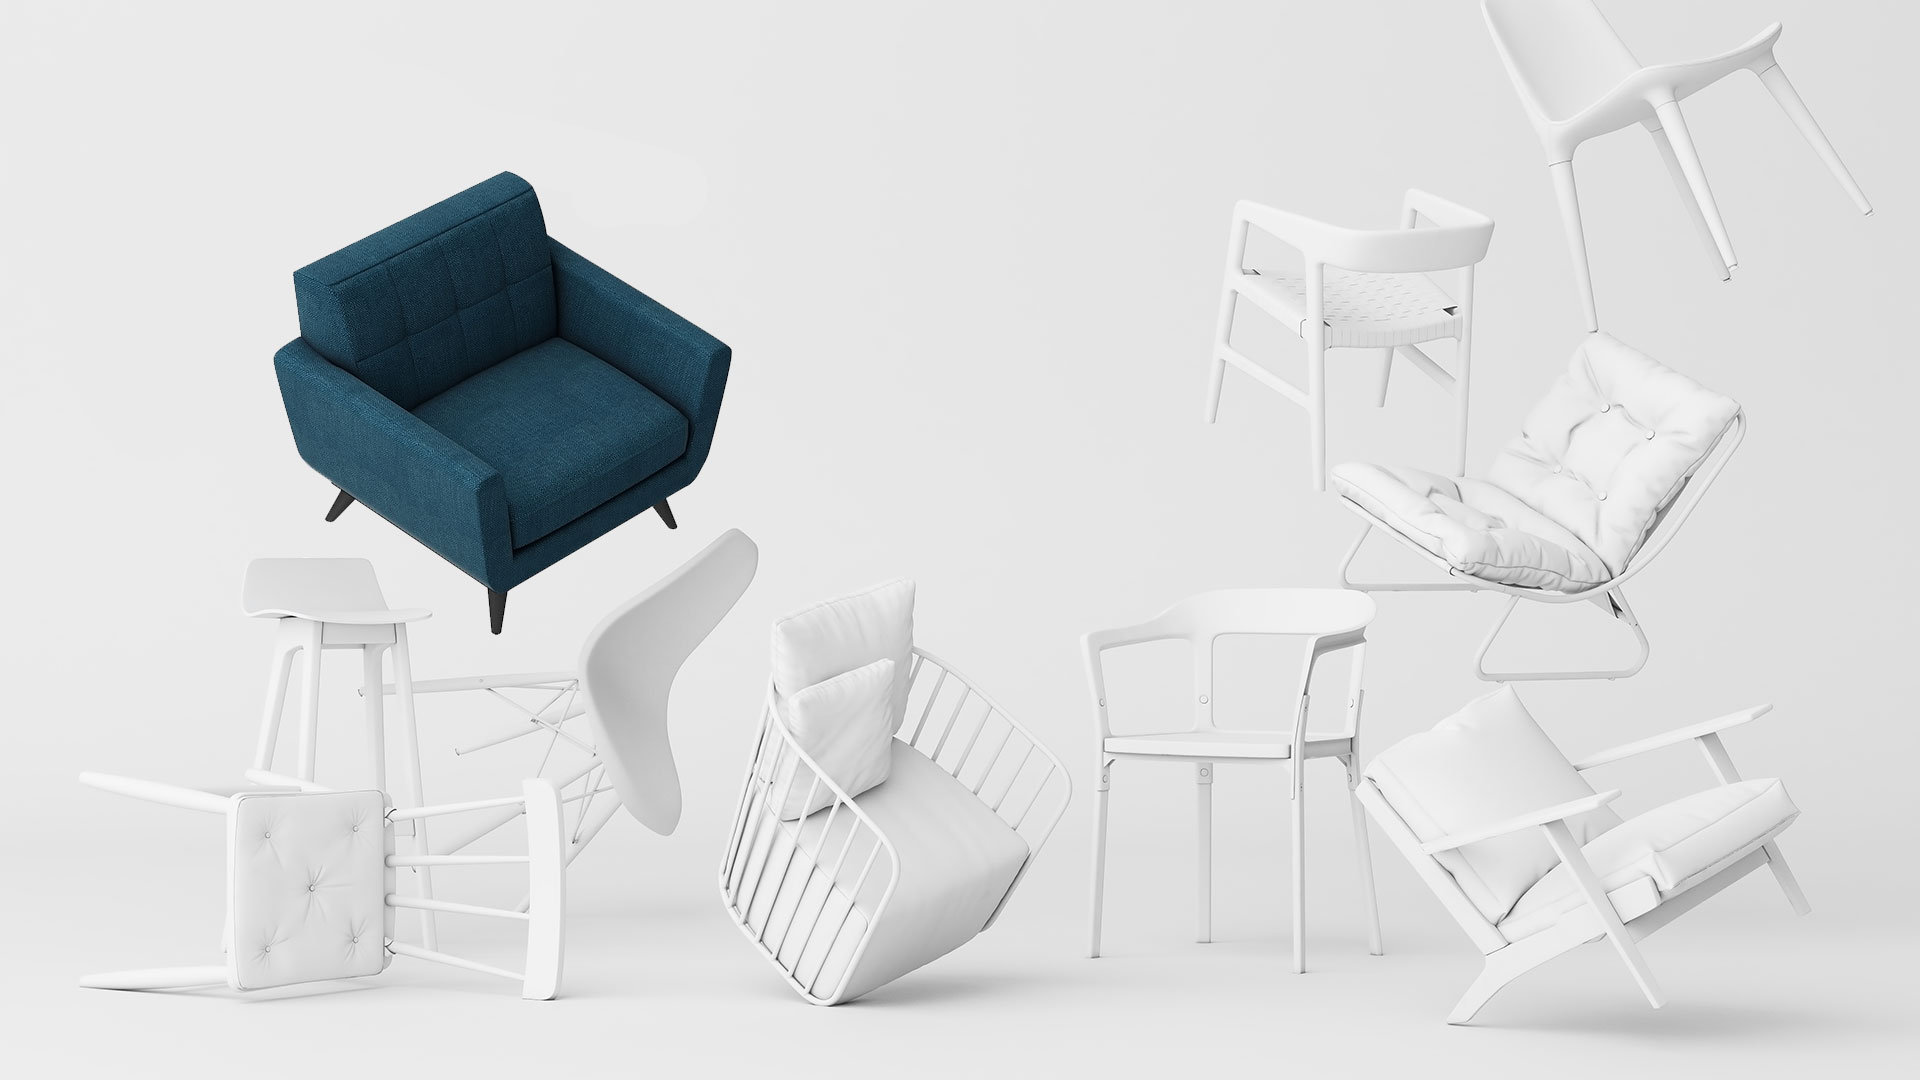 Realistic 3D Models of Flying Chairs for Furniture 3D Rendering